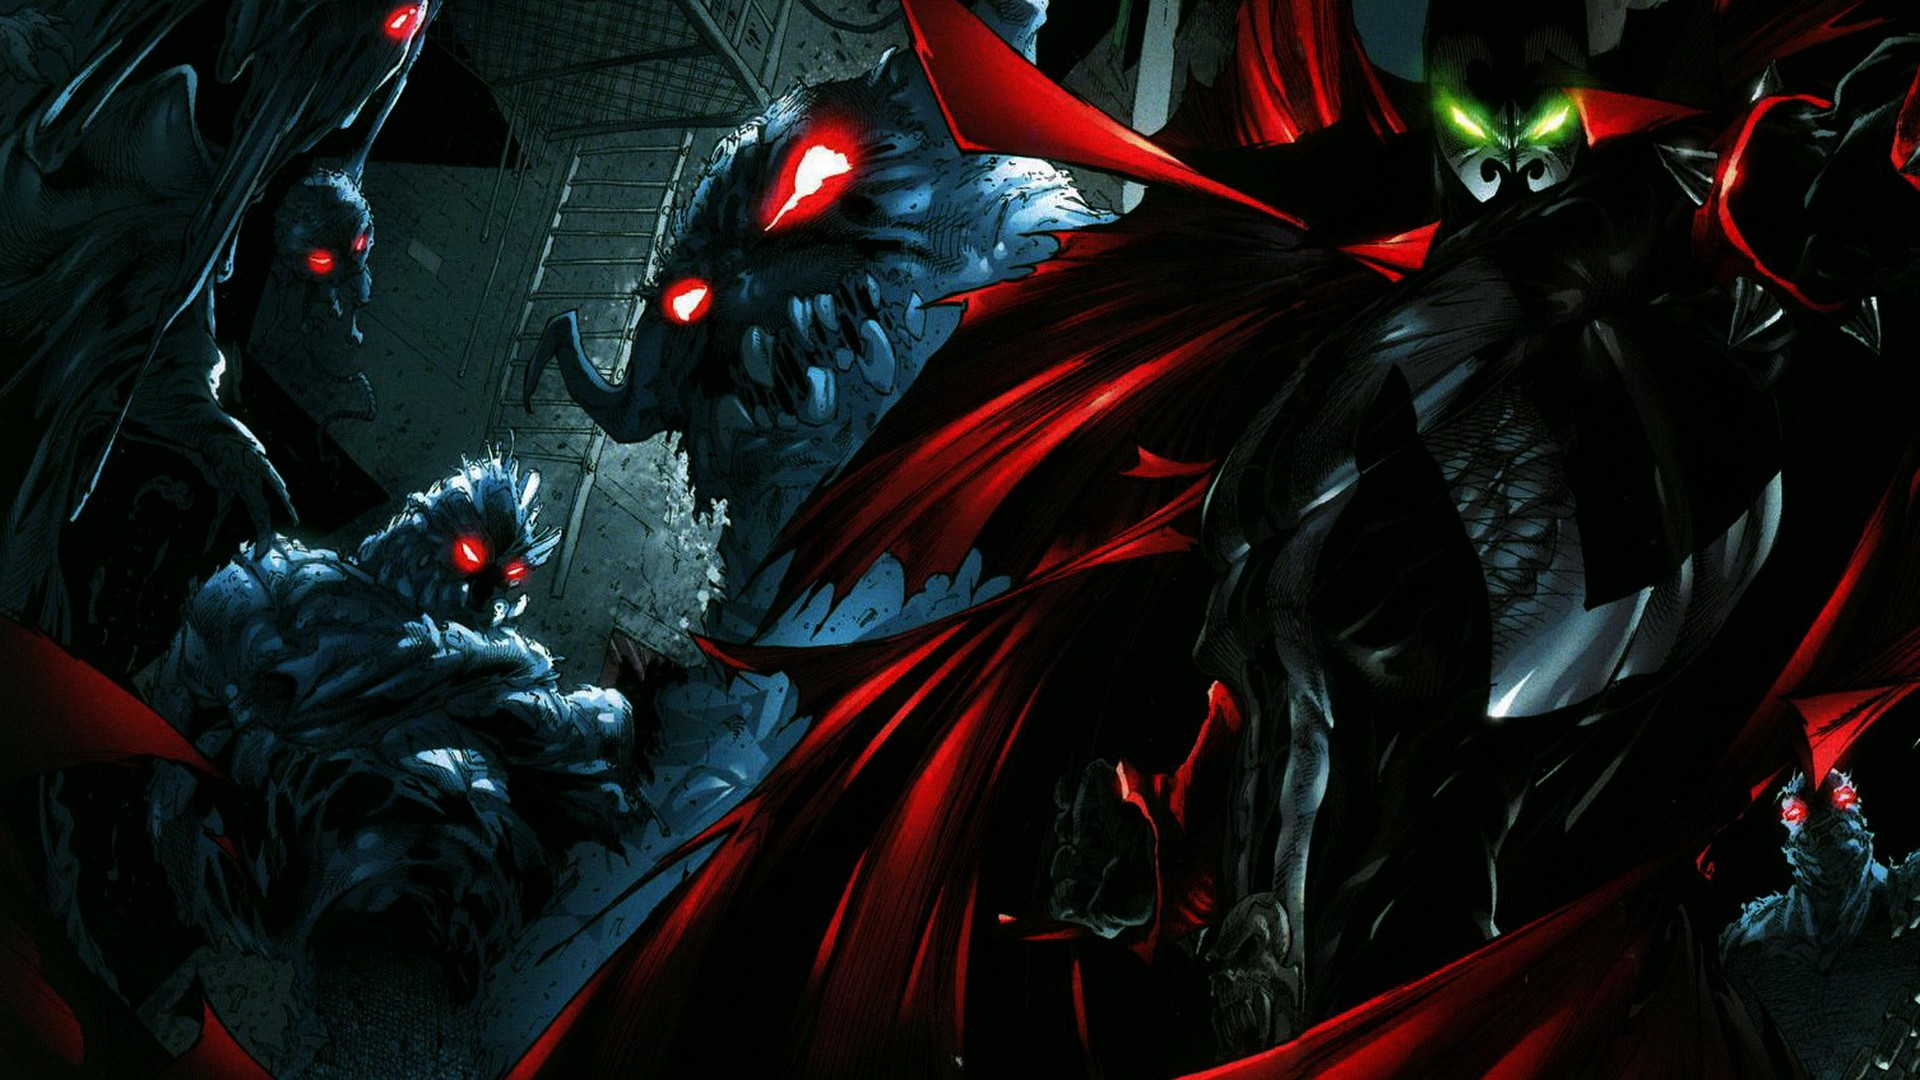 spawn wallpapers 1920x1080 - photo #8